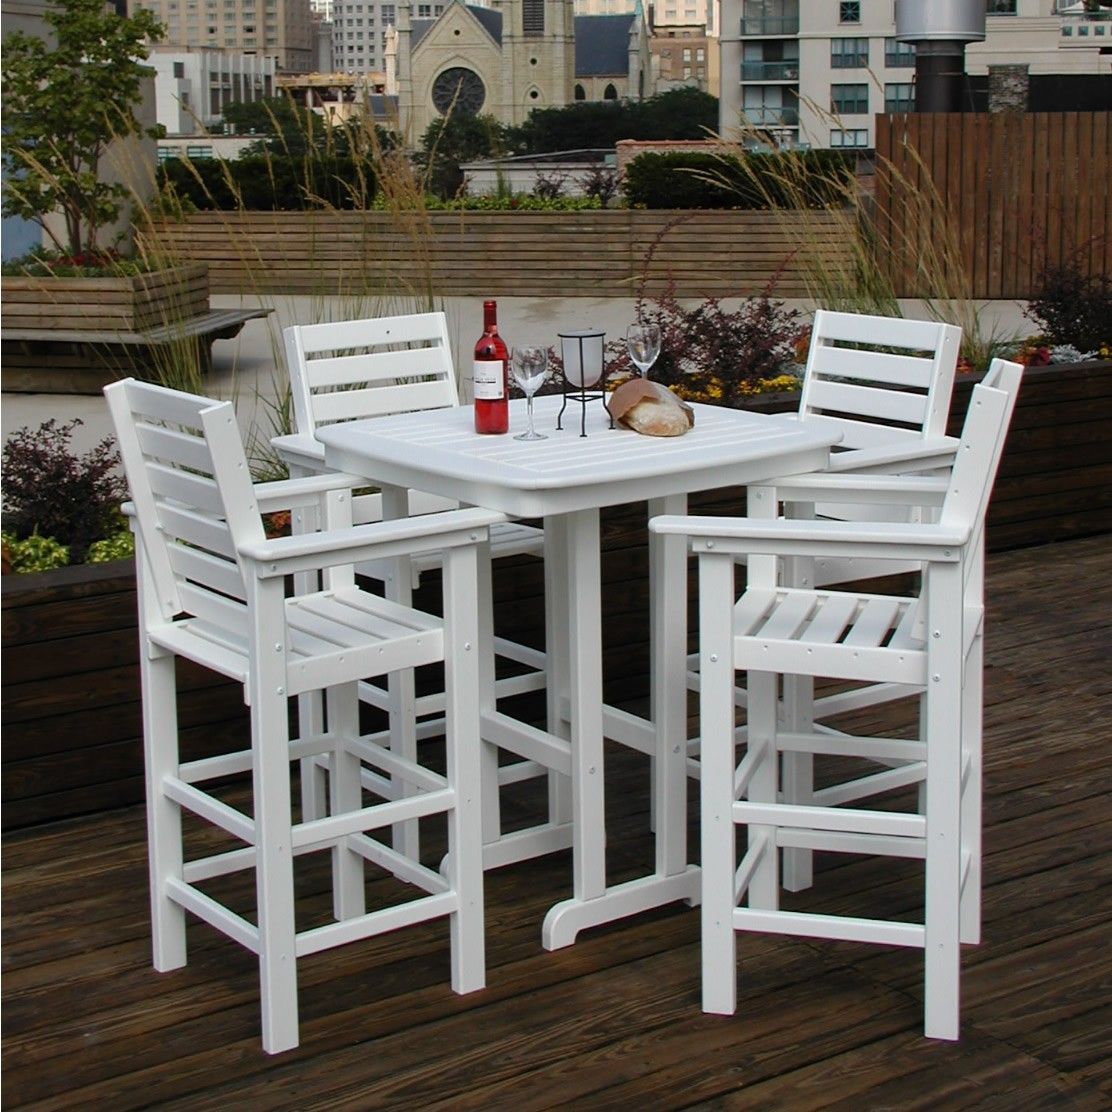 Very Useful Tall Bistro Table Set For Your Home Decor Patio Furniture Sets High Top Tables Bistro Table Set